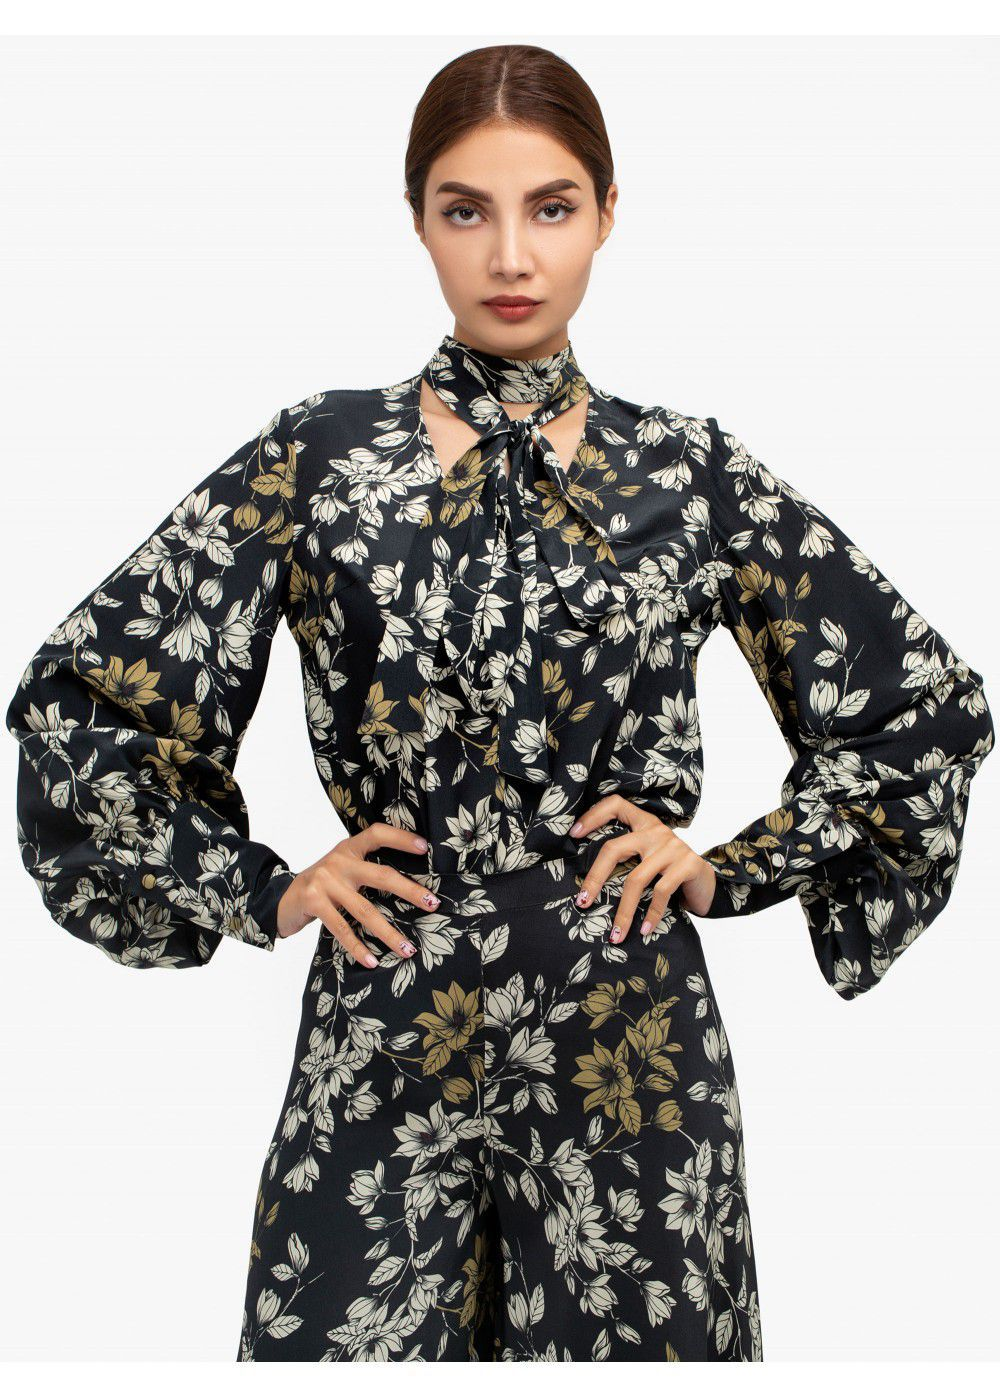 Maleone Floral Blouse